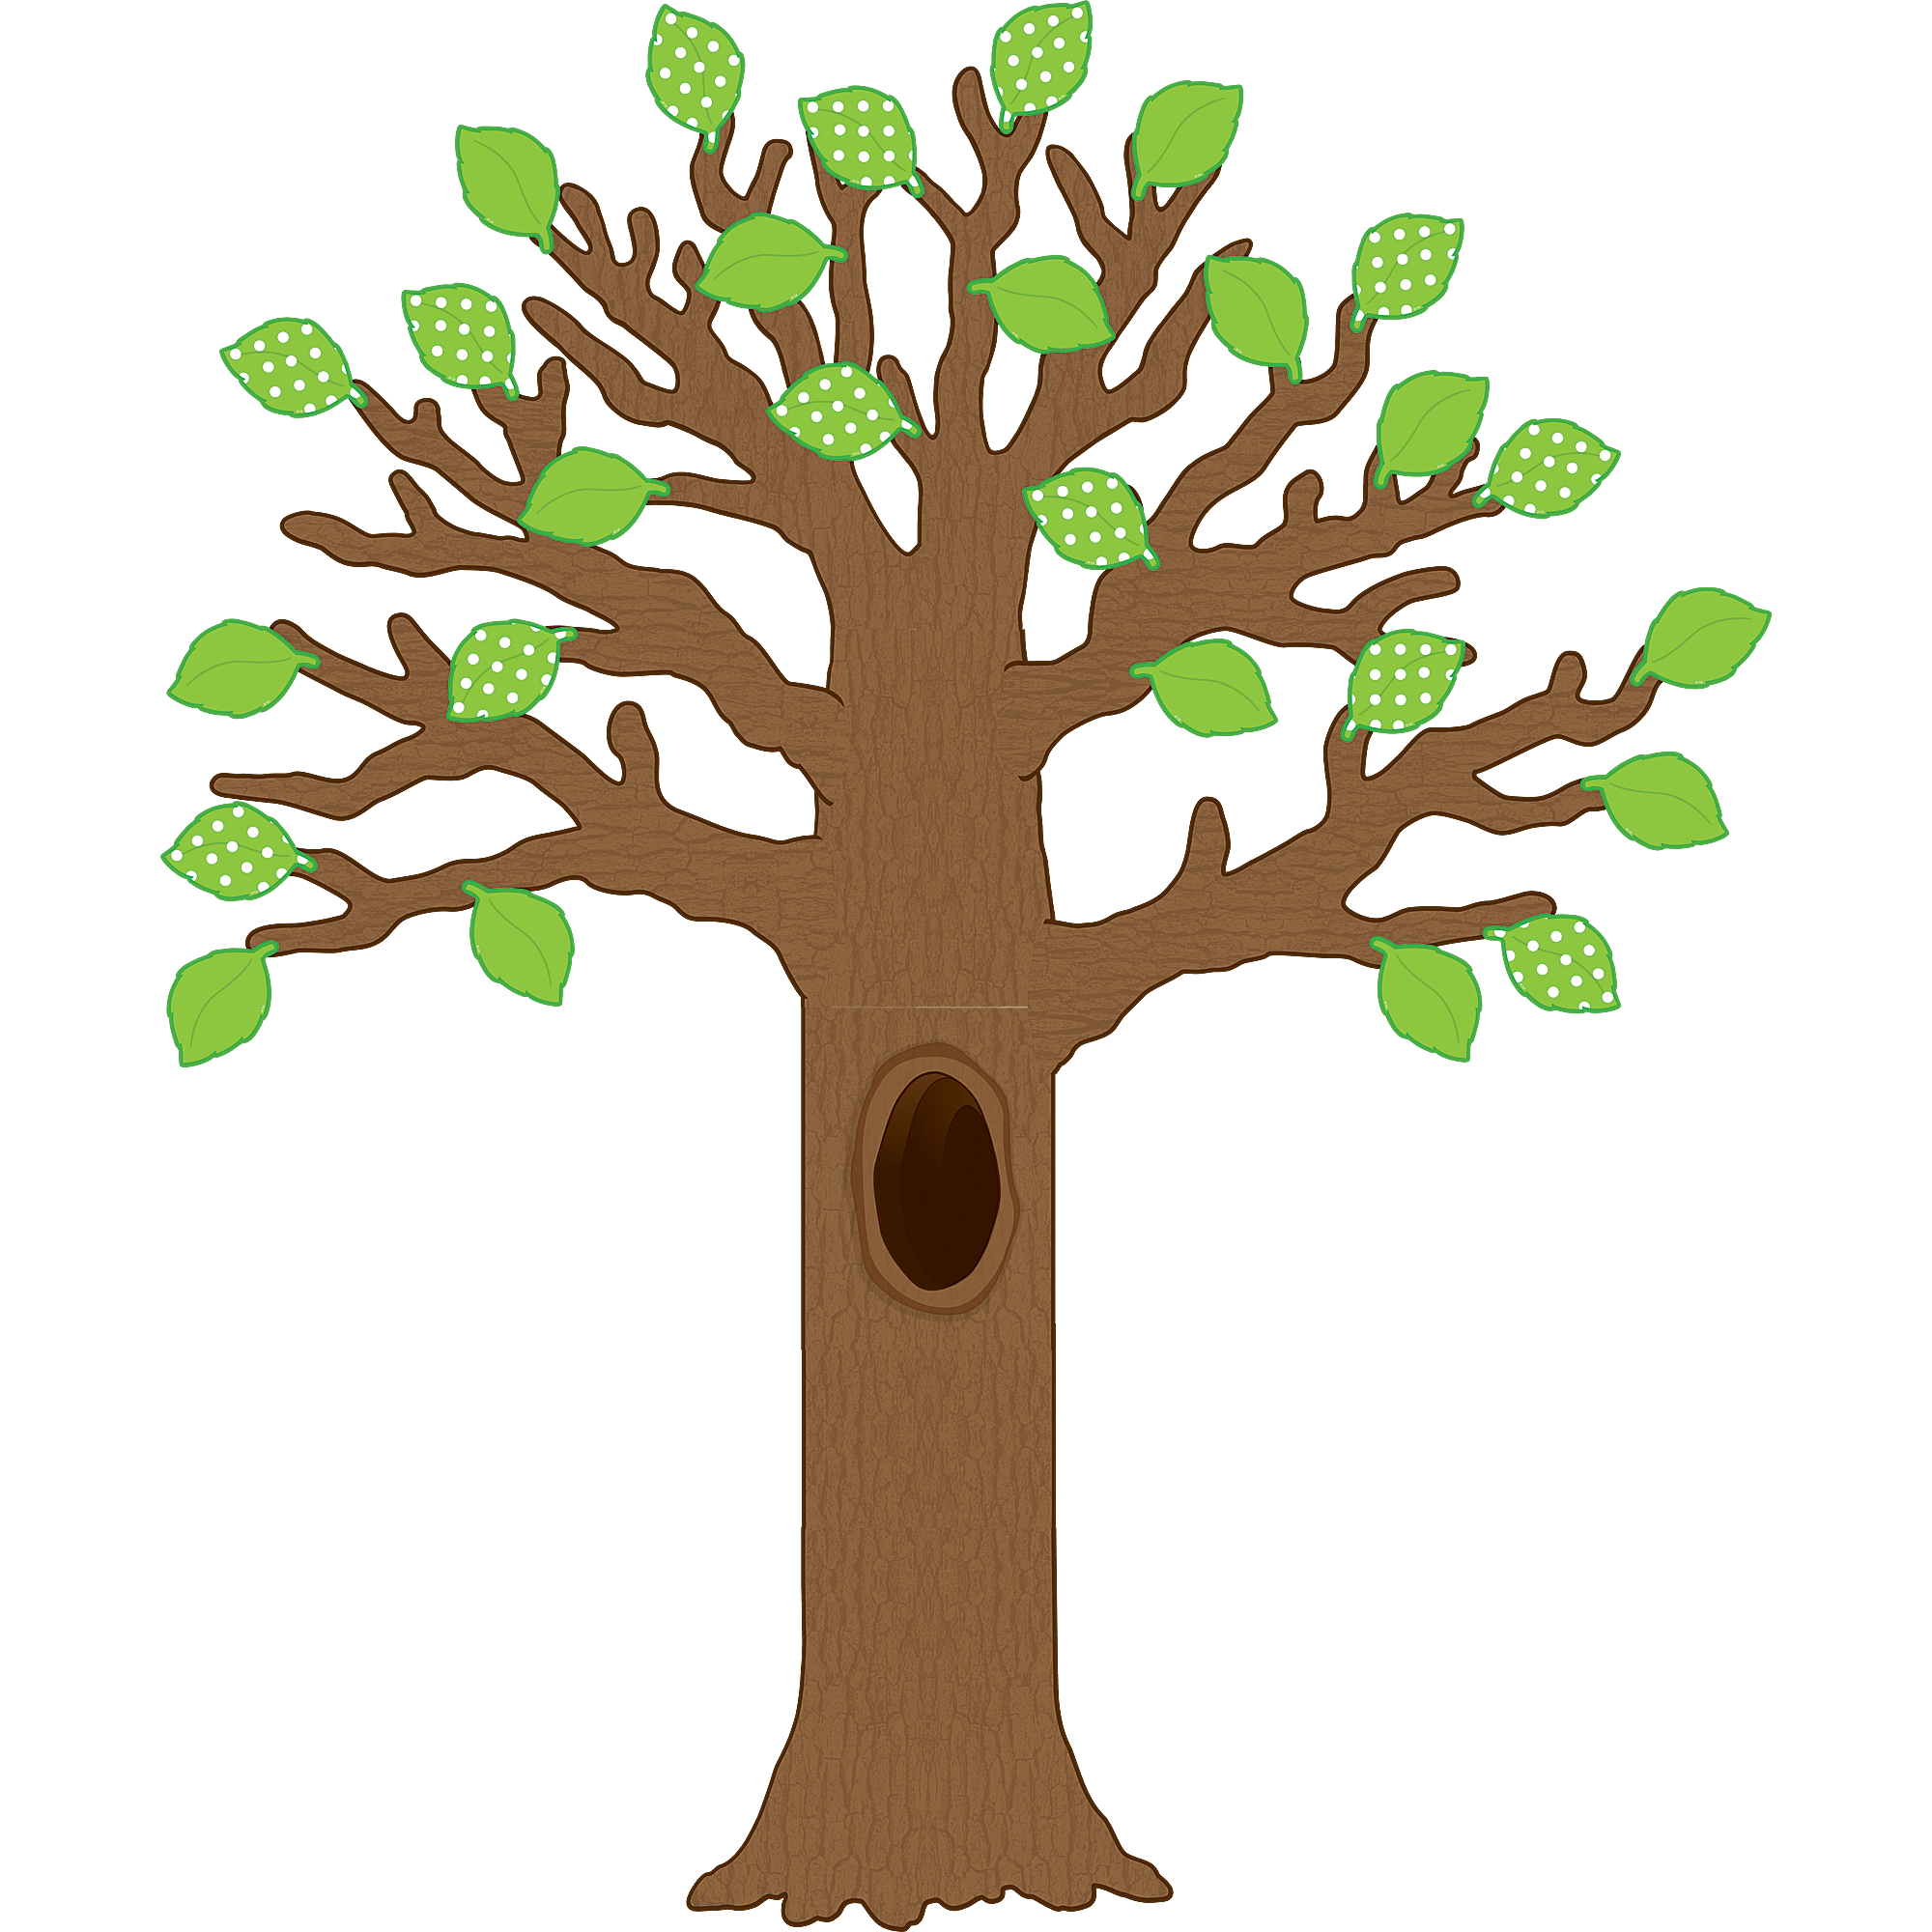 Olive tree clipart free png free Big Tree Clipart at GetDrawings.com | Free for personal use Big Tree ... png free